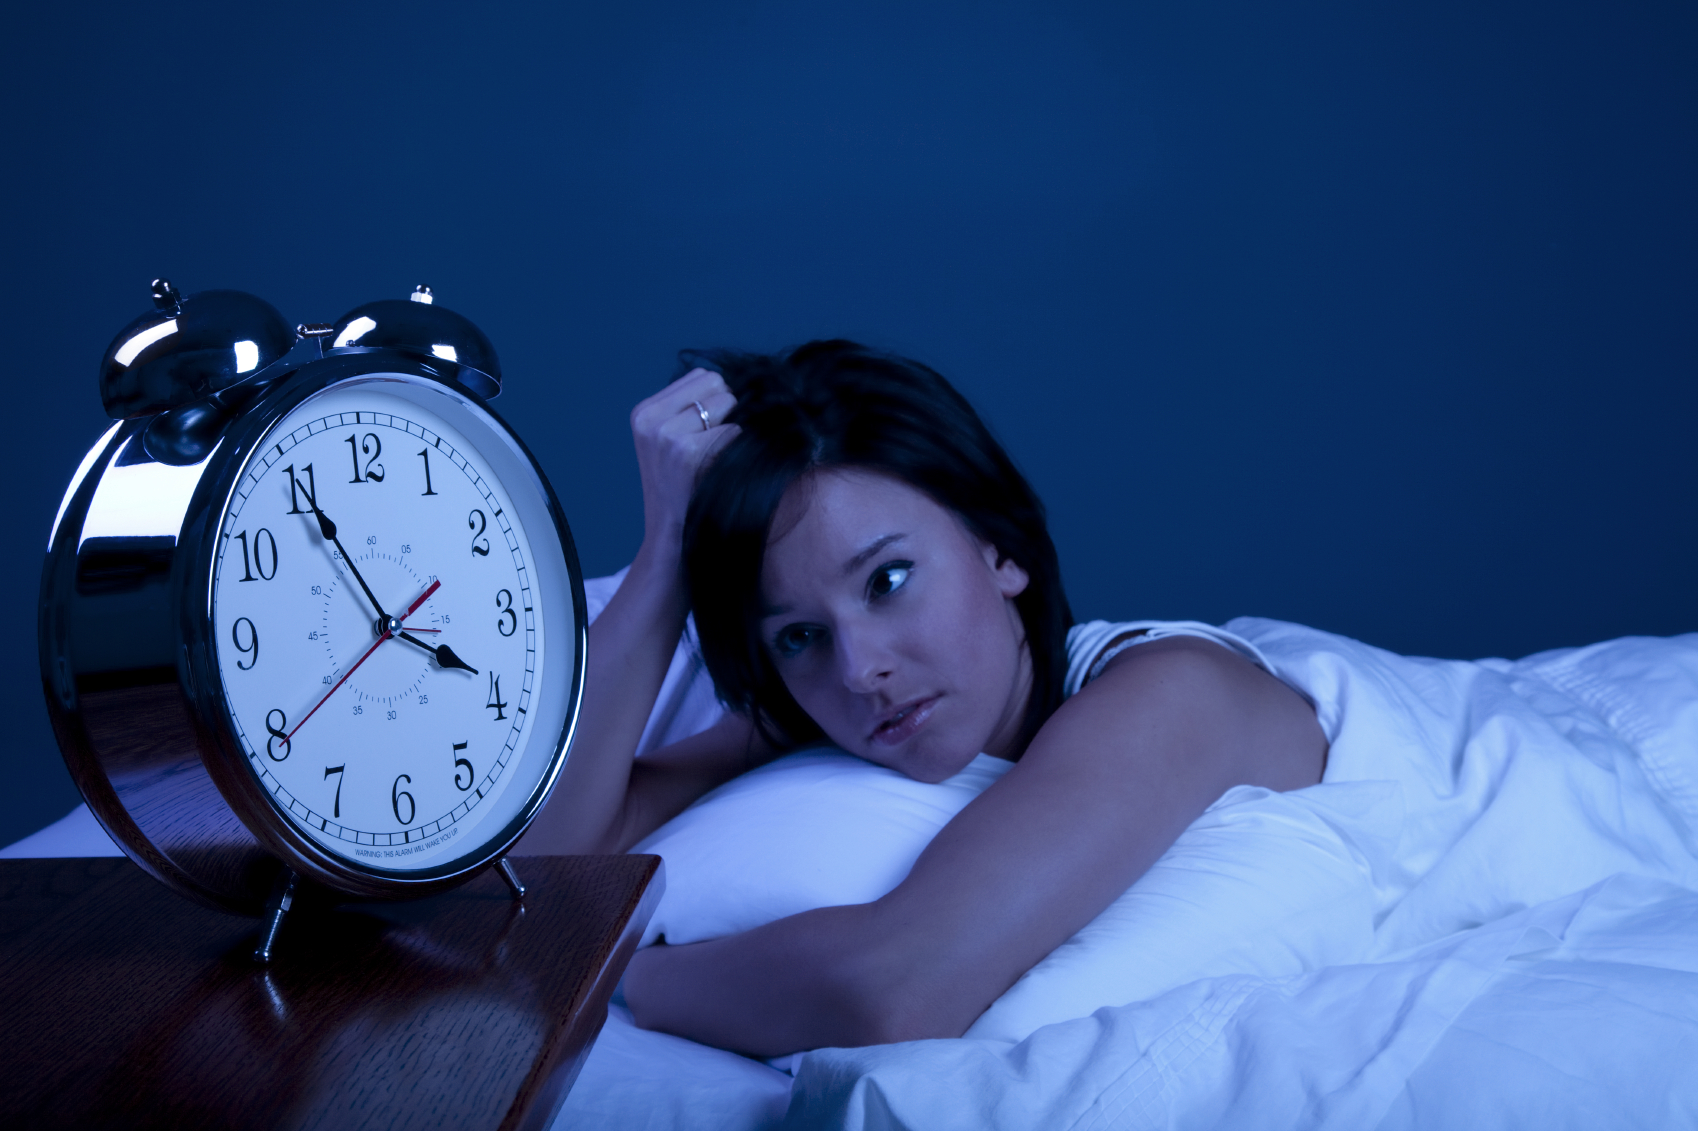 Clear alarm clocks out of your room